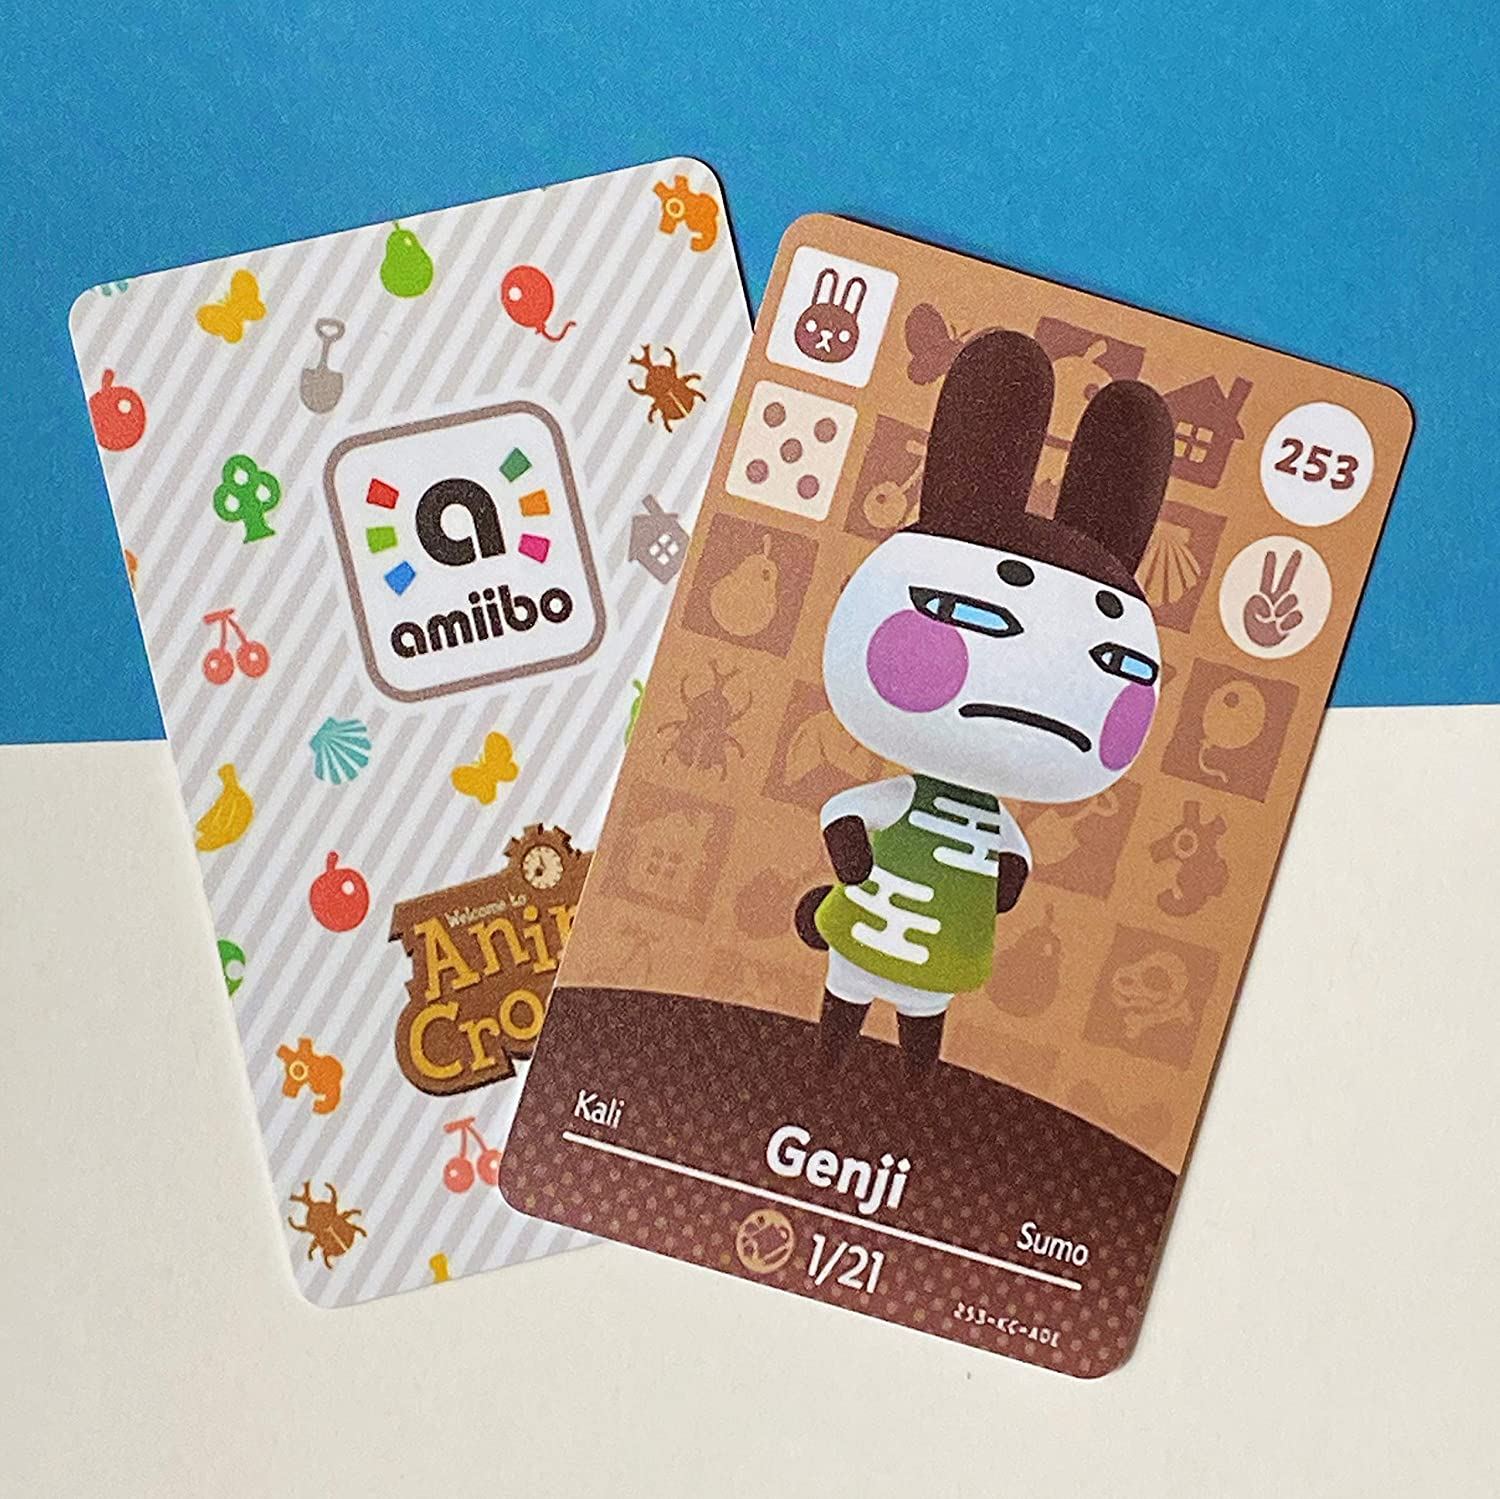 BestTom No.253 Genji ACNH Animal Villager Card Fan Made.Third Party NFC Card Bank Card Size Water Resistant for Switch/Switch Lite/Wii U